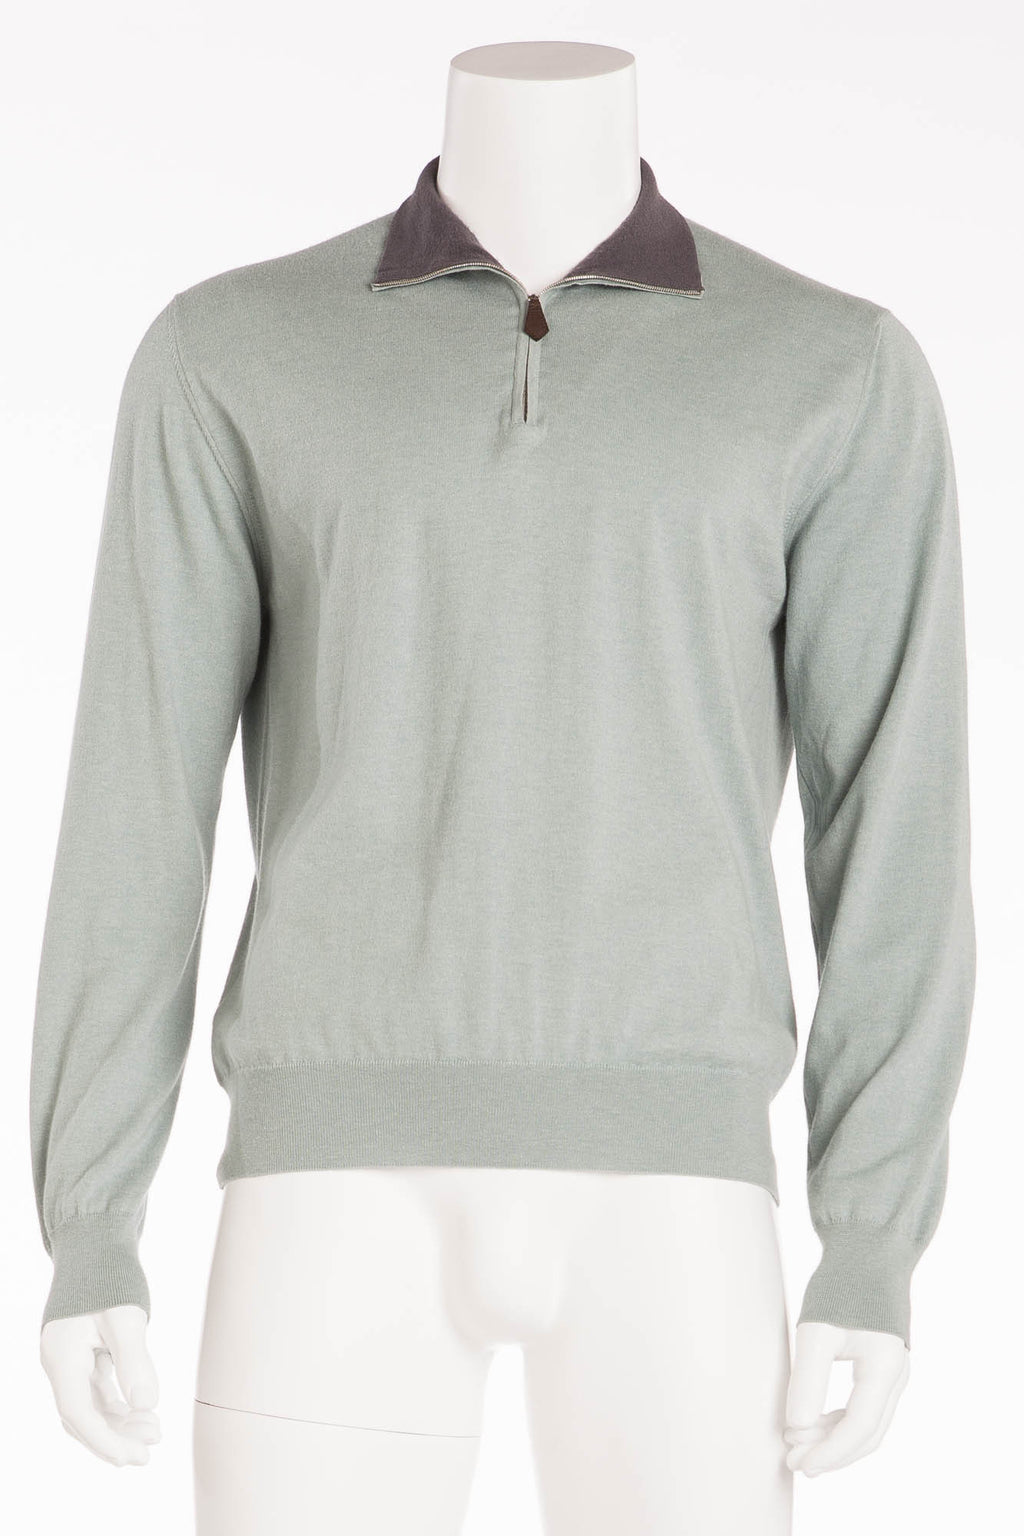 Authentic Hermes - Green Zip Neck Cashmere Sweater Grey Collar - XL